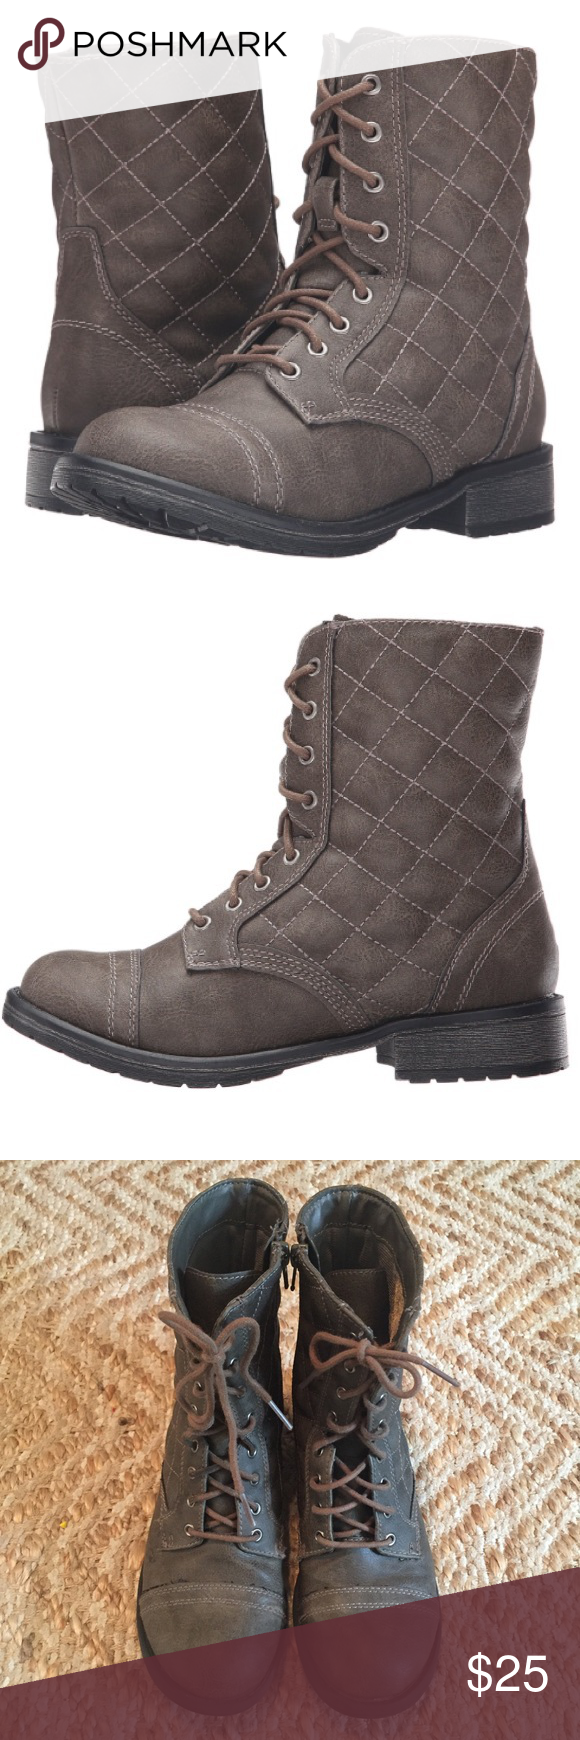 e53591ff75e Steve Madden Moto Boots These are actually kids shoes (big girl 5)